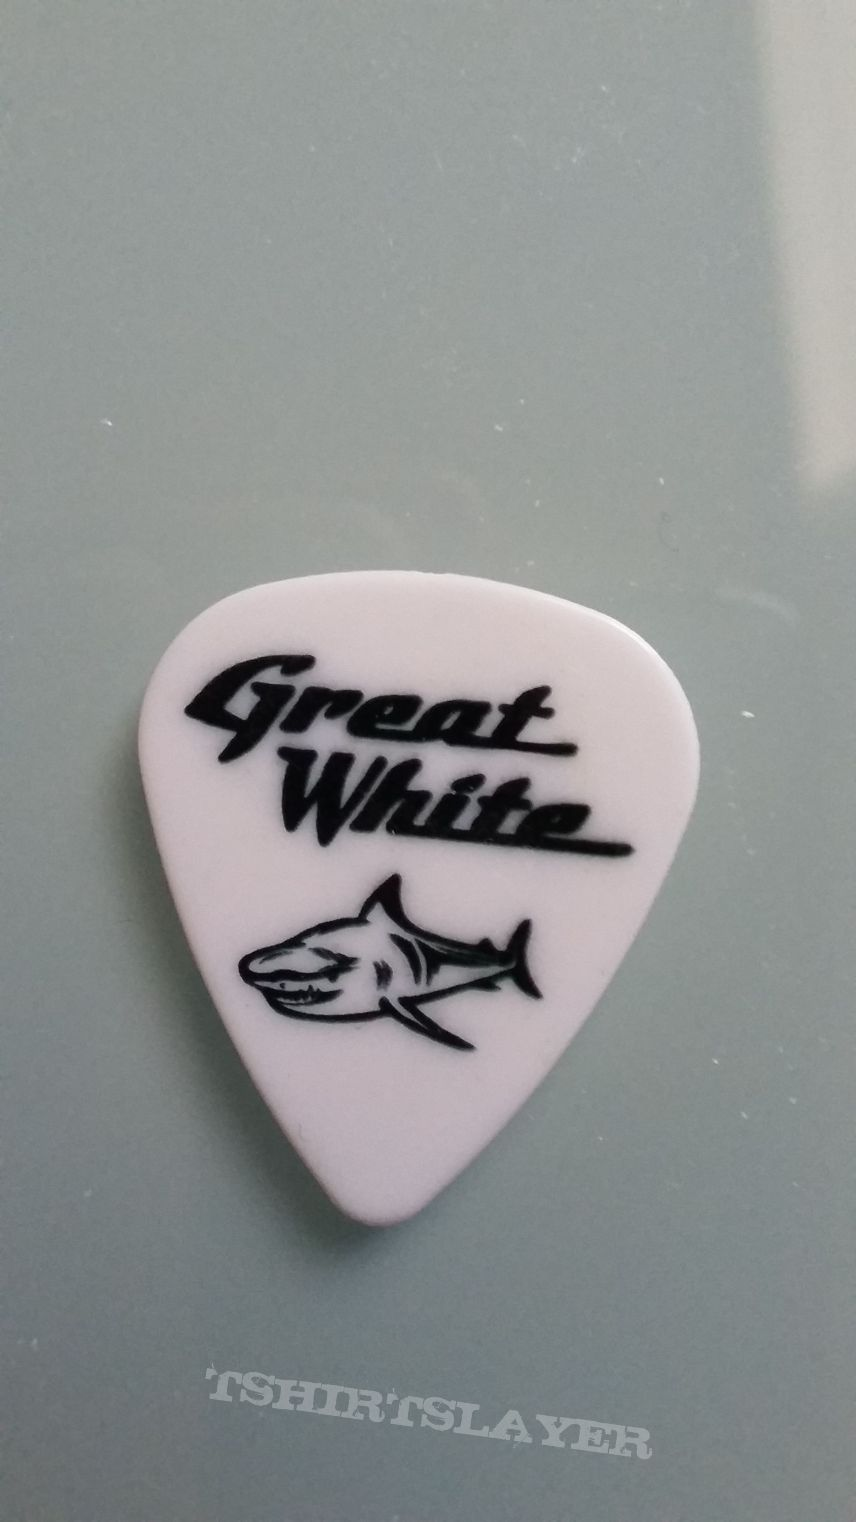 Great White - guitar pick